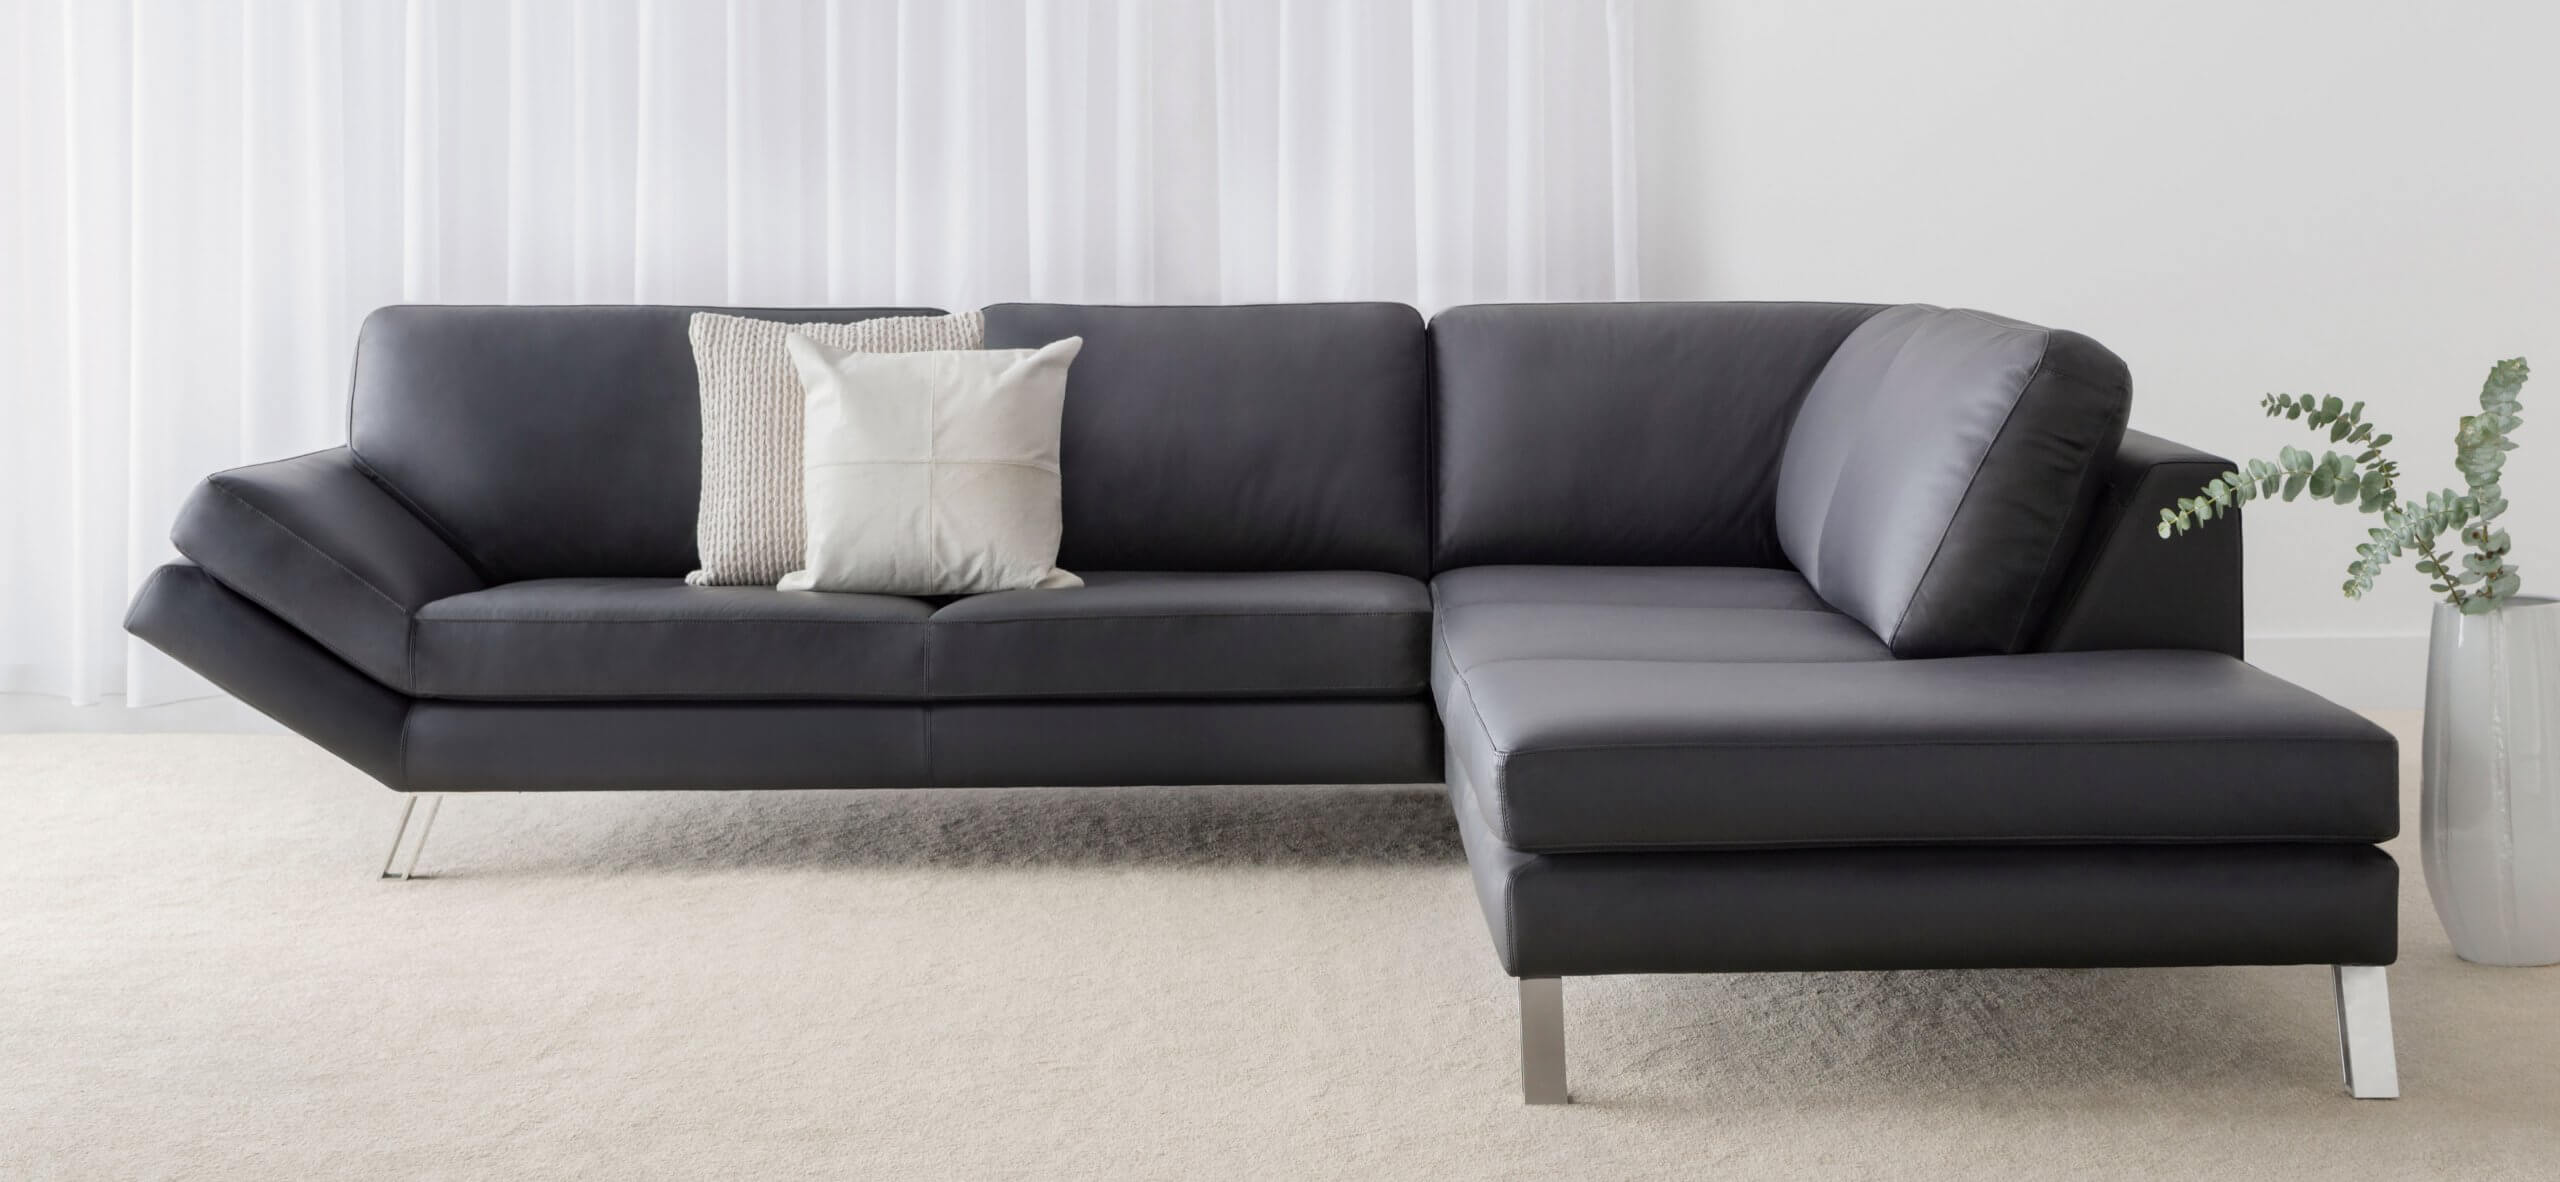 modern leather modular sofa with chrome legs and angled arm feature